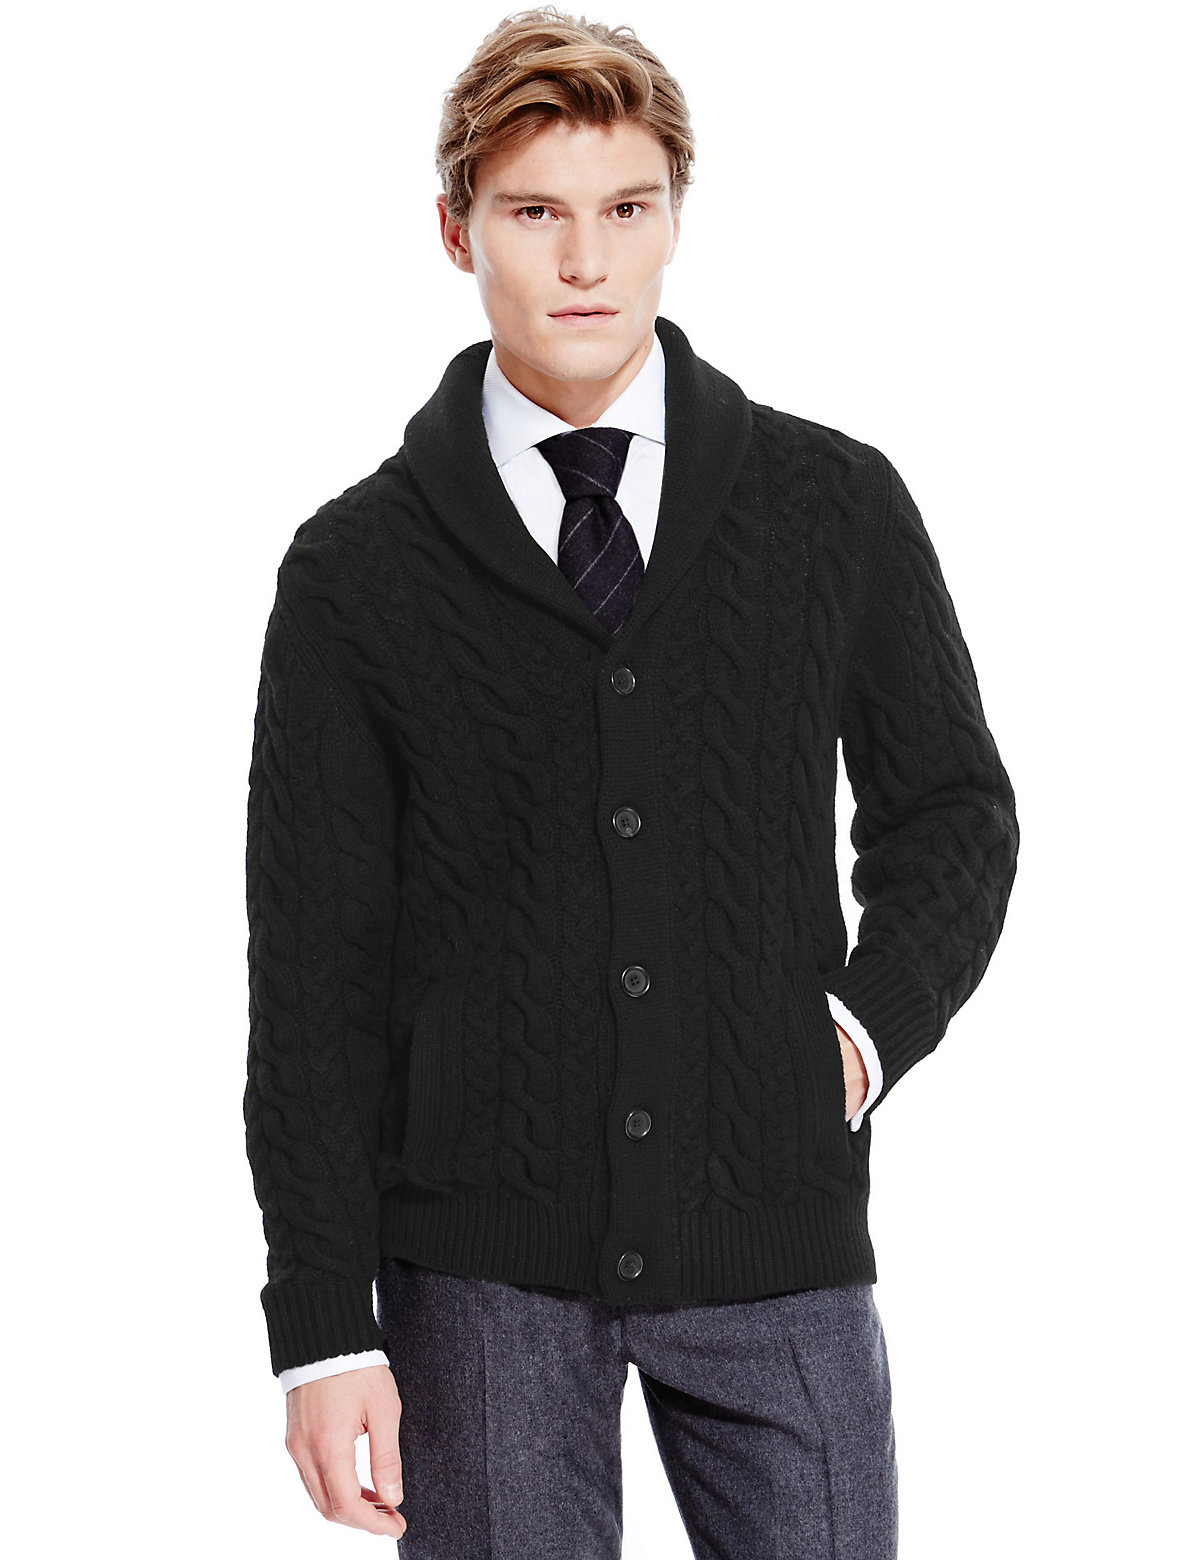 M  S Collection Best of British Pure Lambswool Cable Knit Cardigan $149.00 AT vintagedancer.com